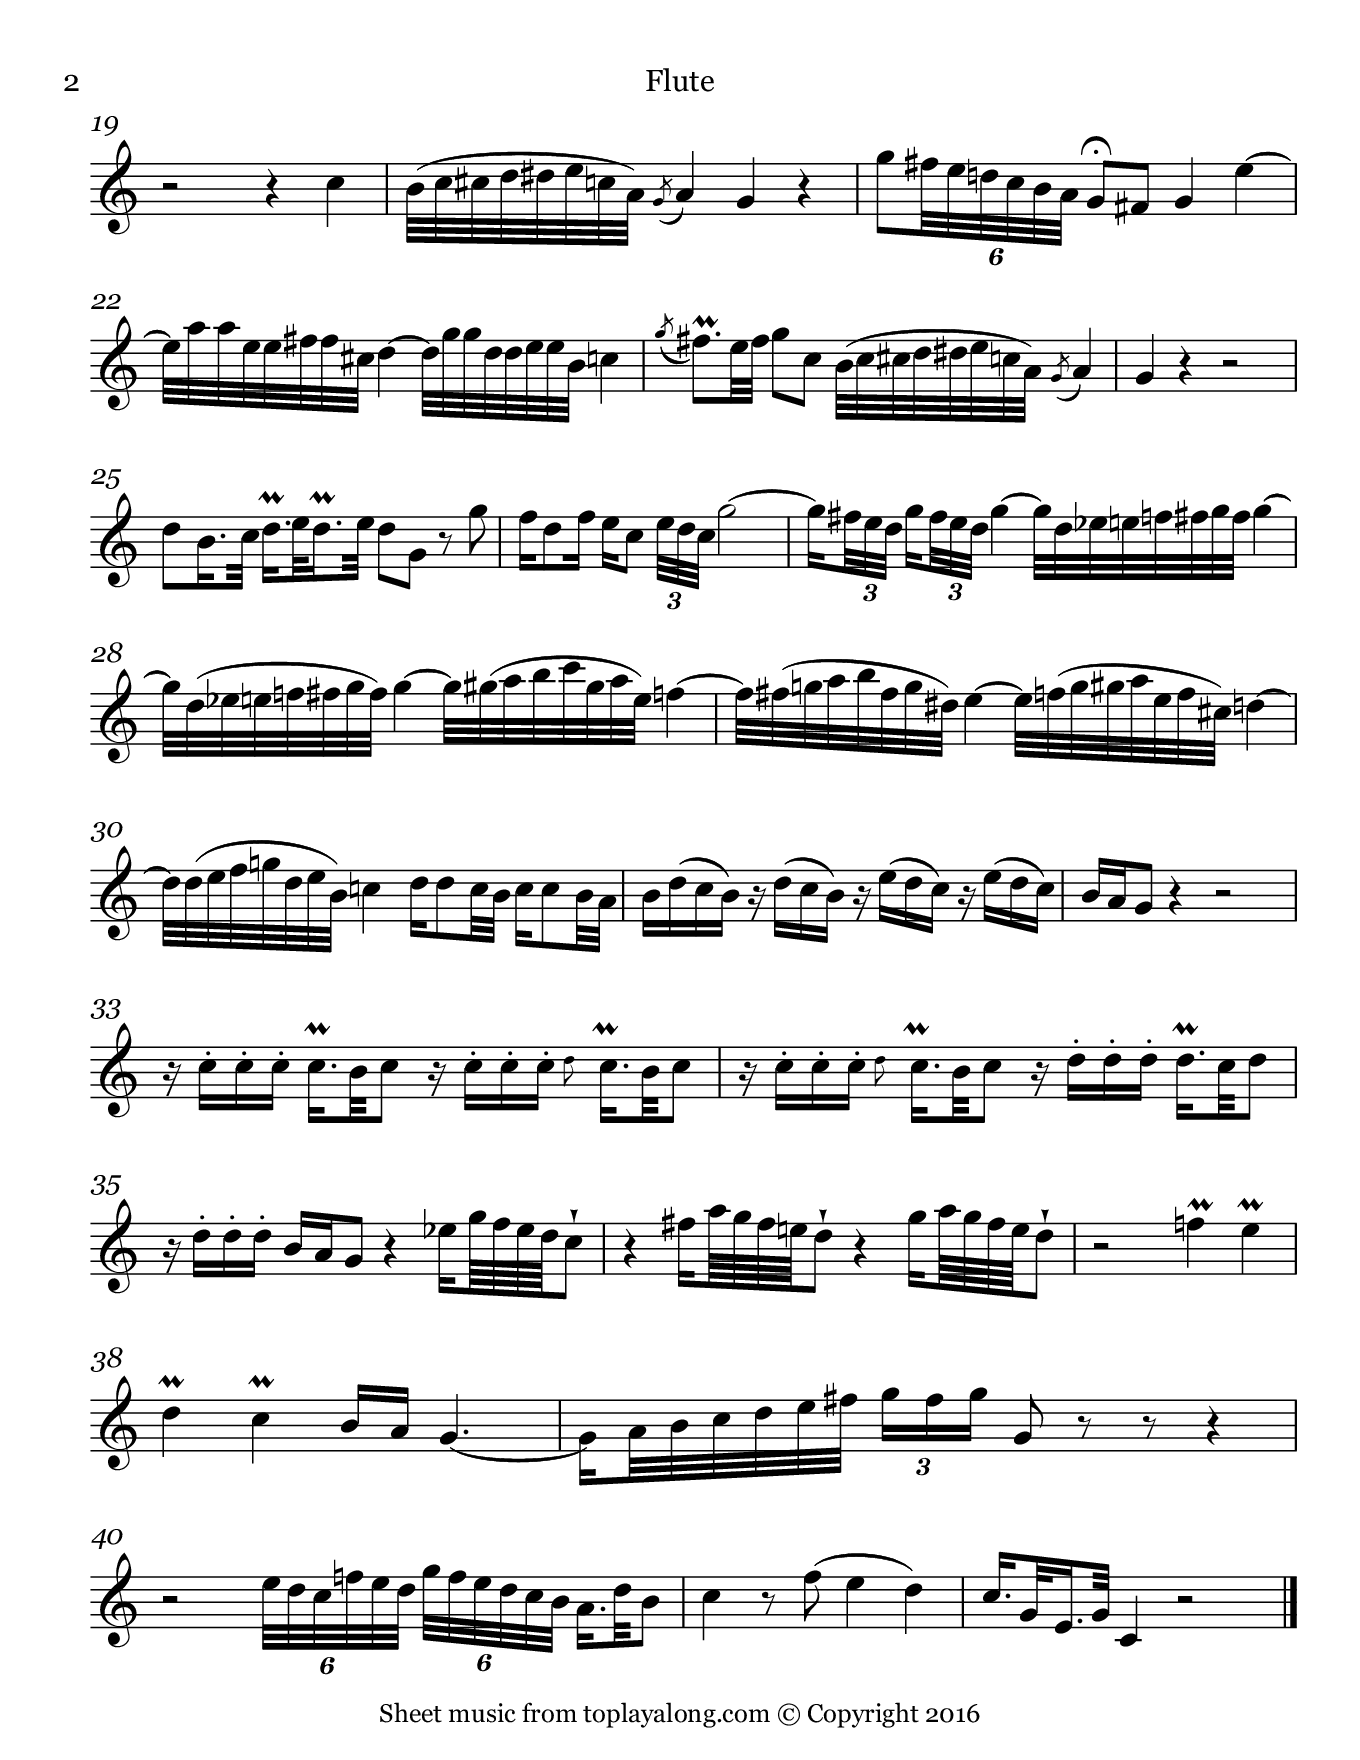 Lièto così talvolta from Adriano in Siria by Pergolesi. Sheet music for Flute, page 2.